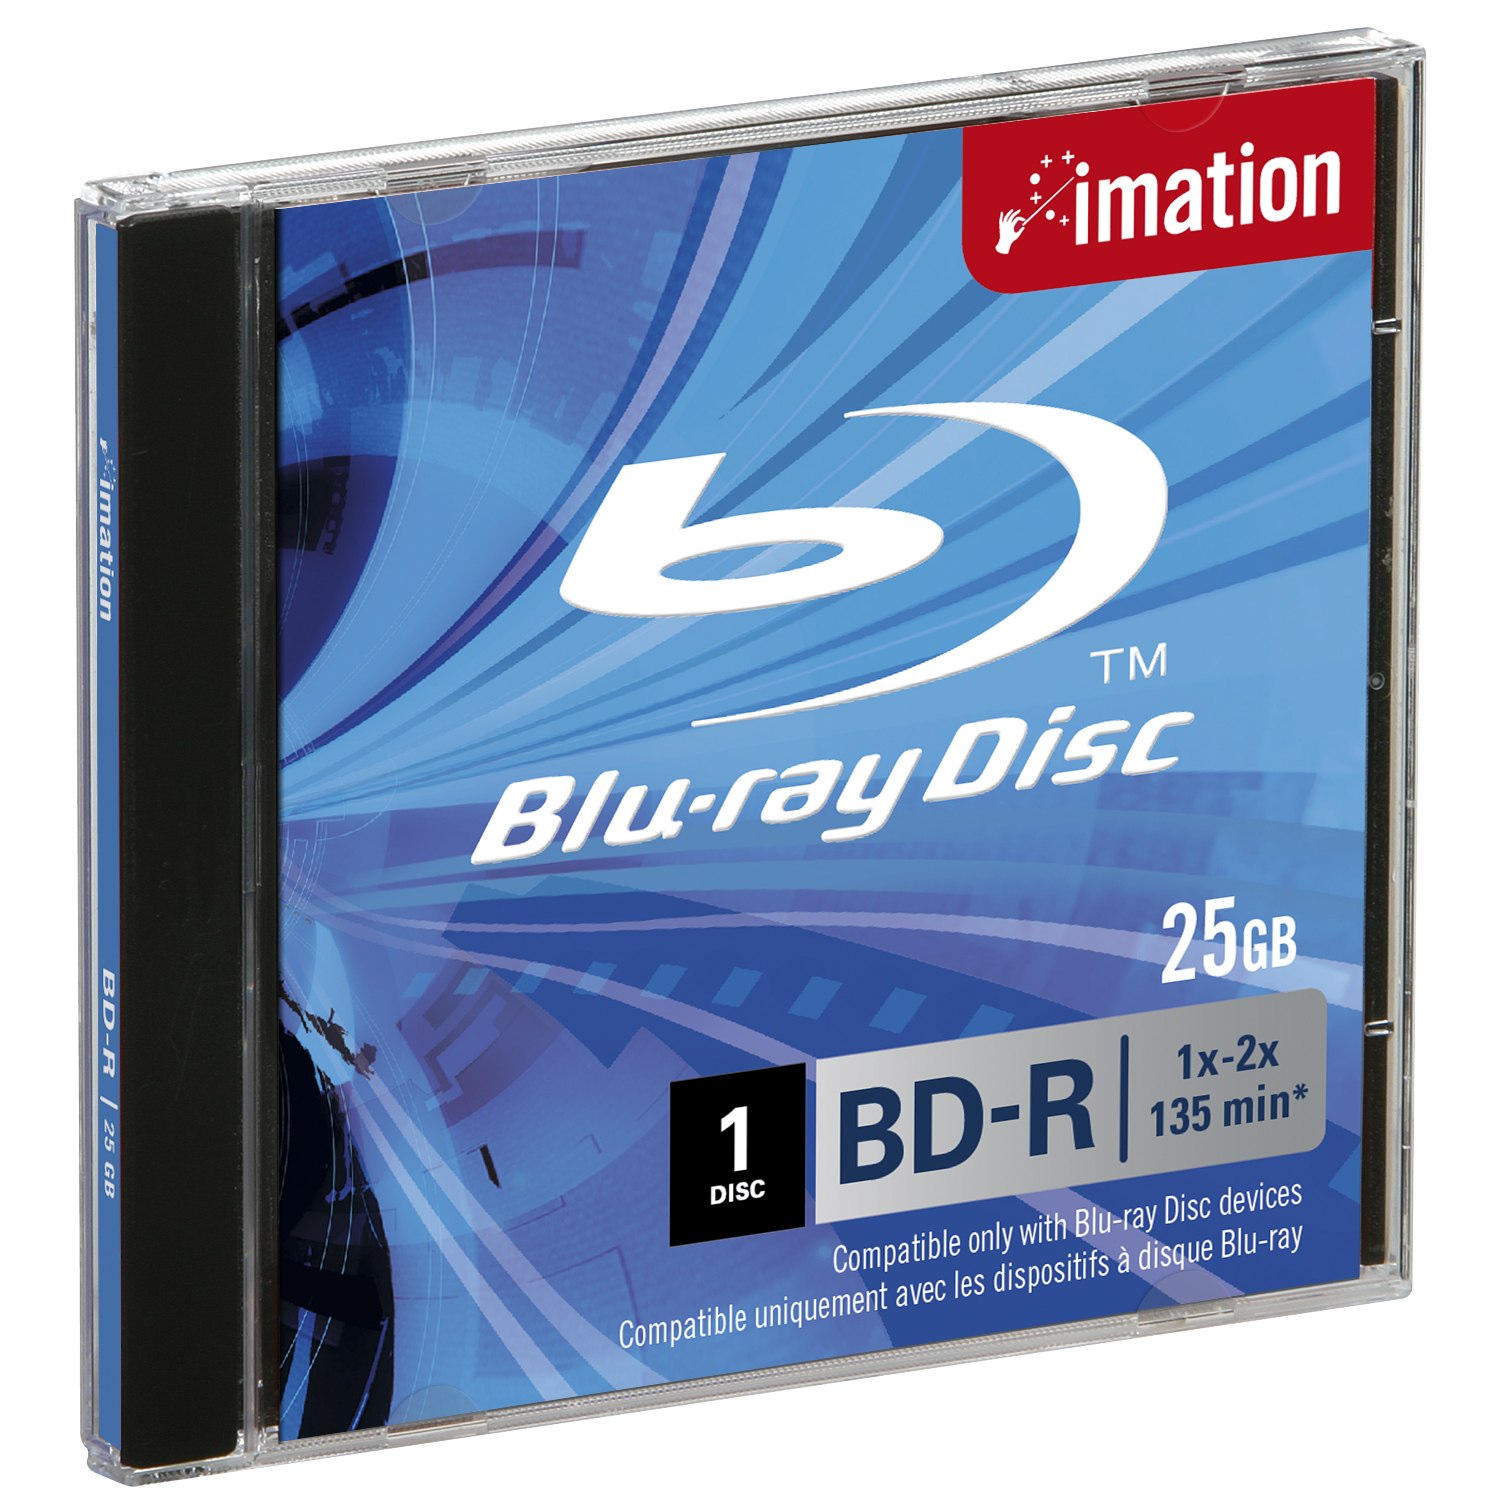 blu ray disk Buy verbatim bd-r blu-ray 25gb 6x white inkjet hub printable discs (50 pack spindle) featuring 25gb, up to 6x write speed over two hours of high-definition video.